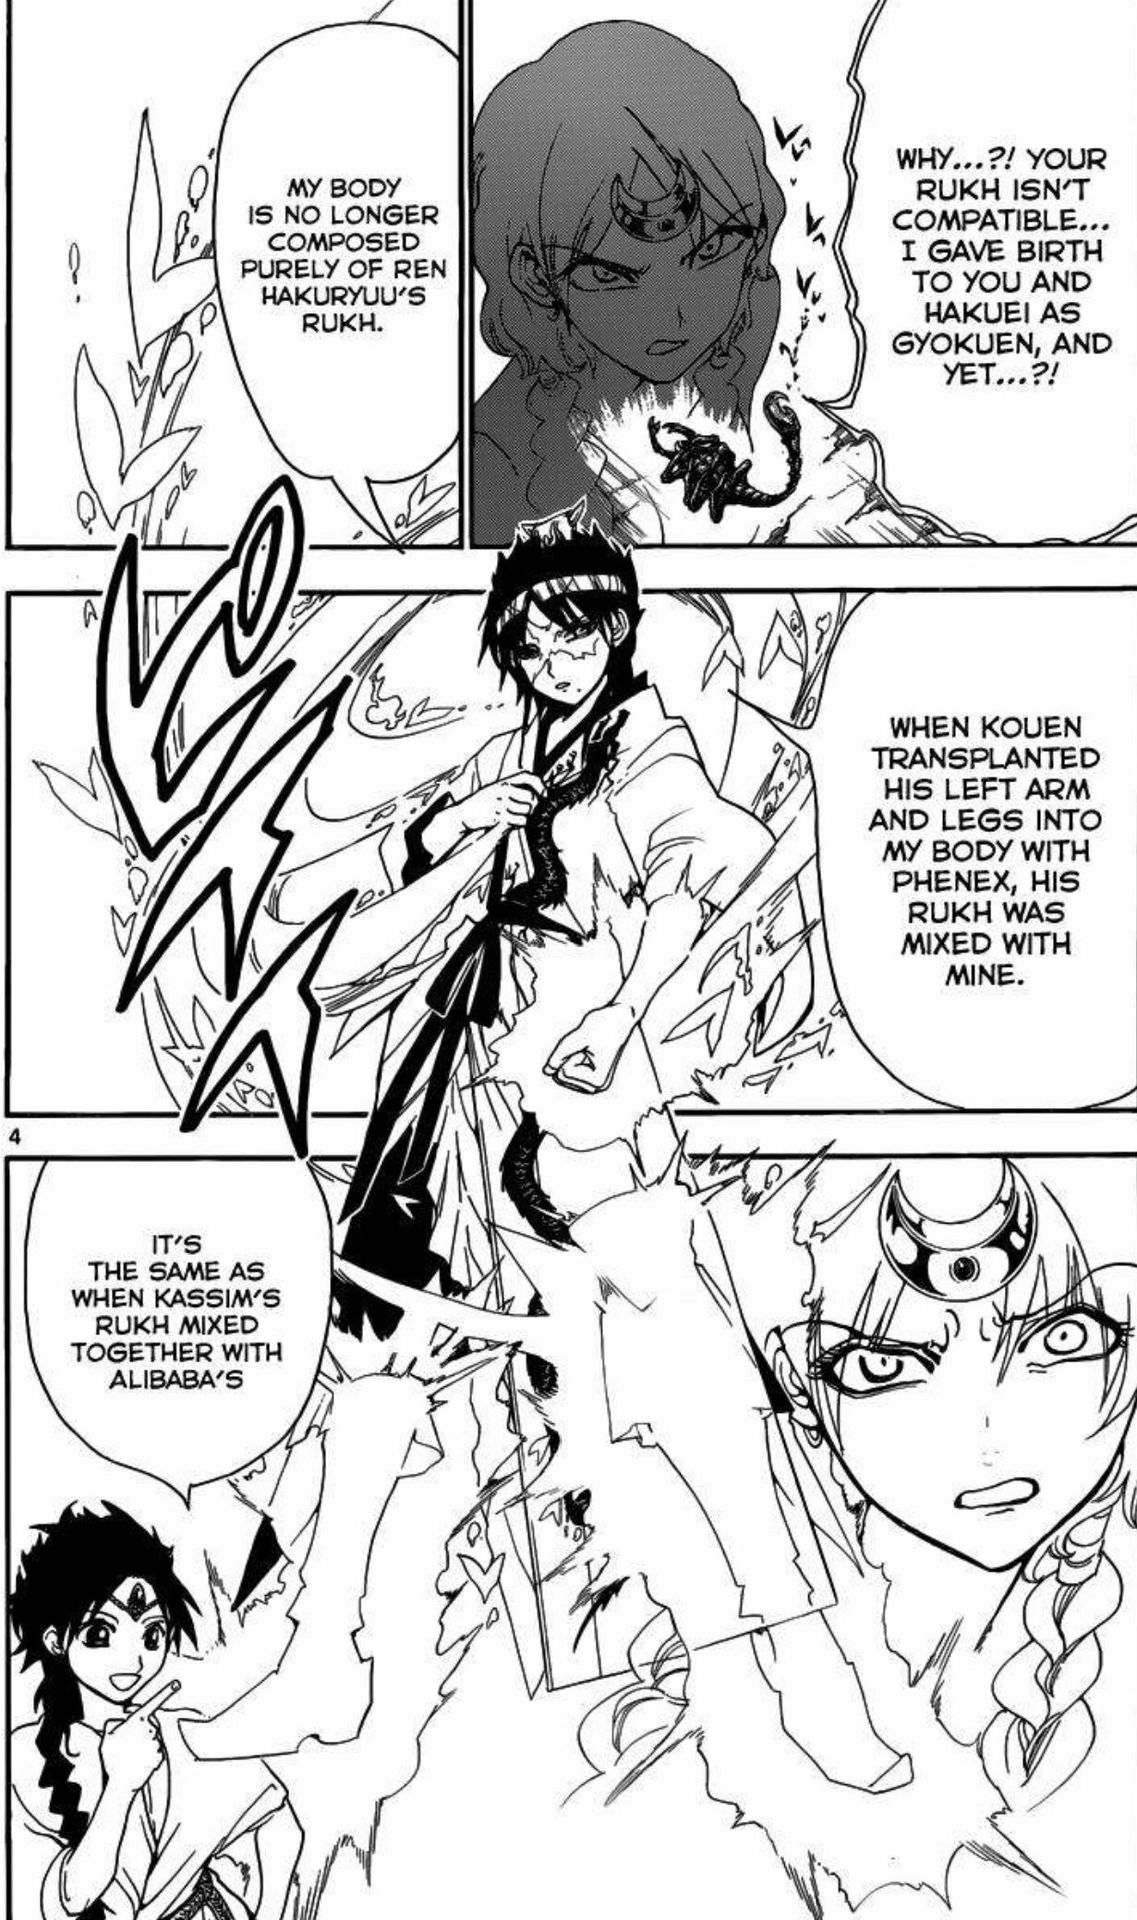 1) Arba wasn't able to posses Hakuryuu because his rukh is now mixed with Kouen's, similar to how Cassim's rukh mixed in with Alibaba's